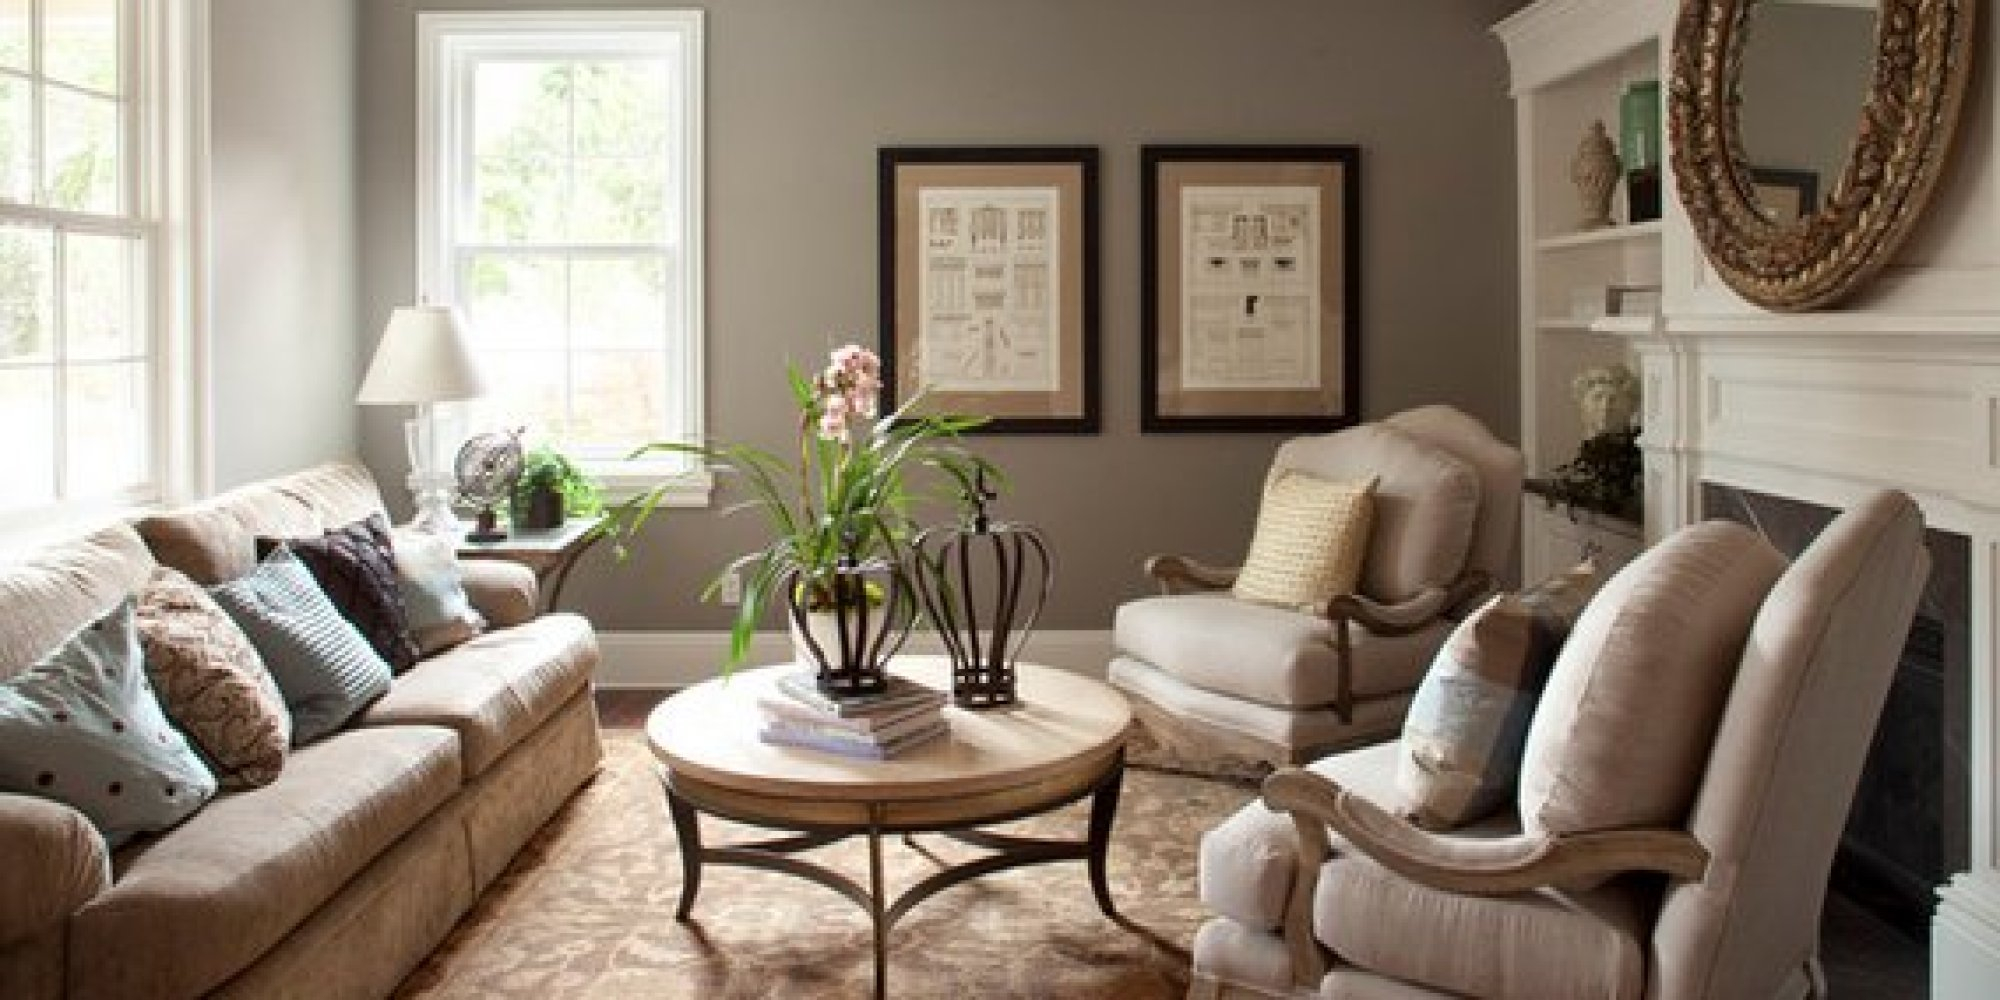 Inspirational The 6 Best Paint Colors That Work In Any Home | Huffpost within Good Living Room Colors